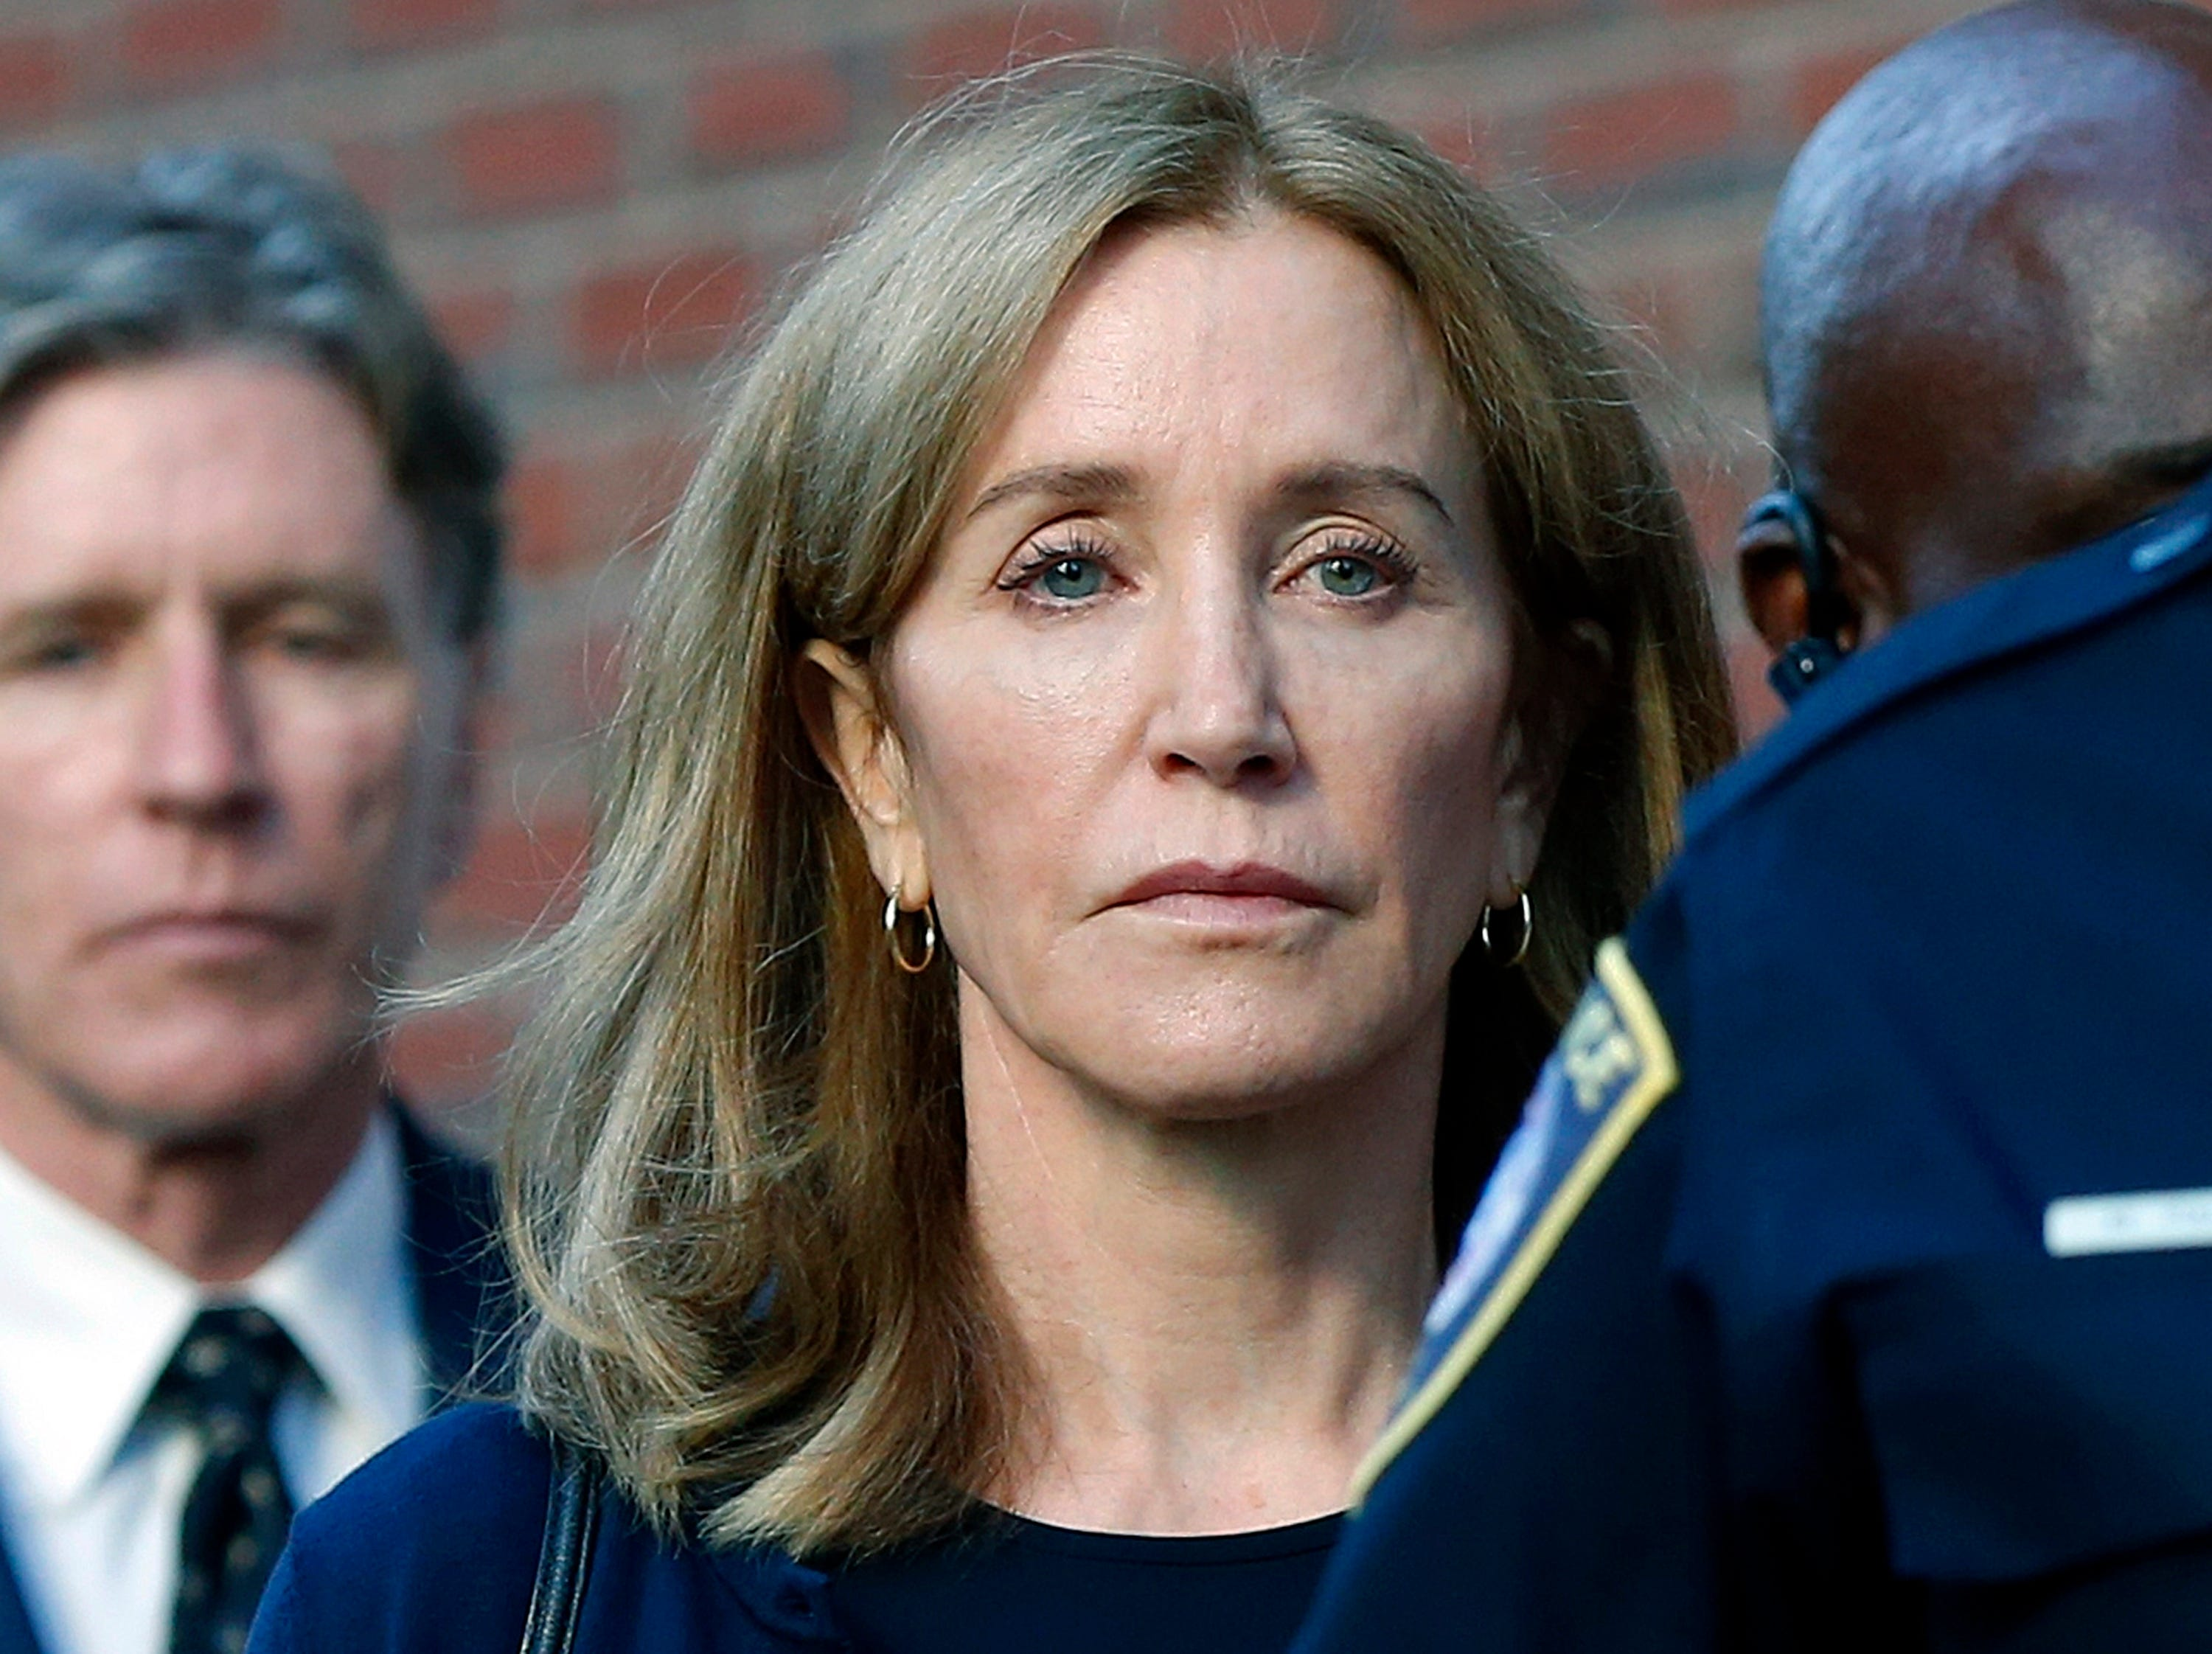 Felicity Huffman lands new TV pilot on ABC after serving time in college cheating scandal